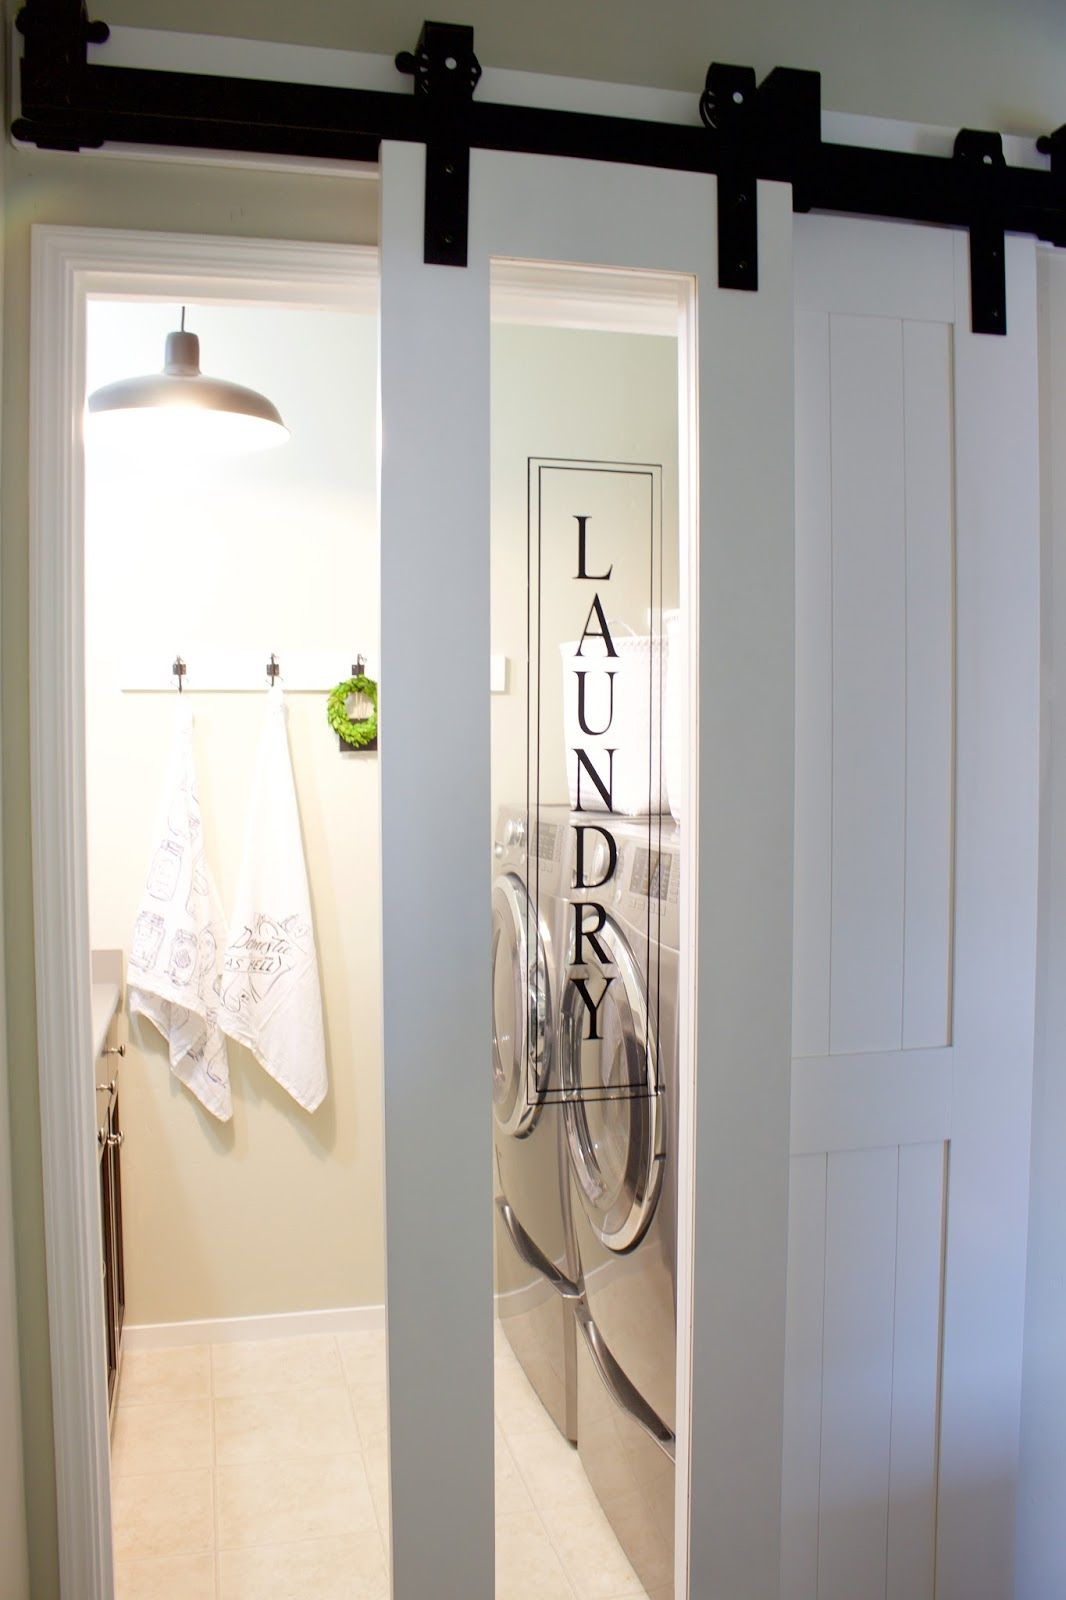 Interior Barn Door With Glass the finishing touch-a sliding barn door for the laundry room